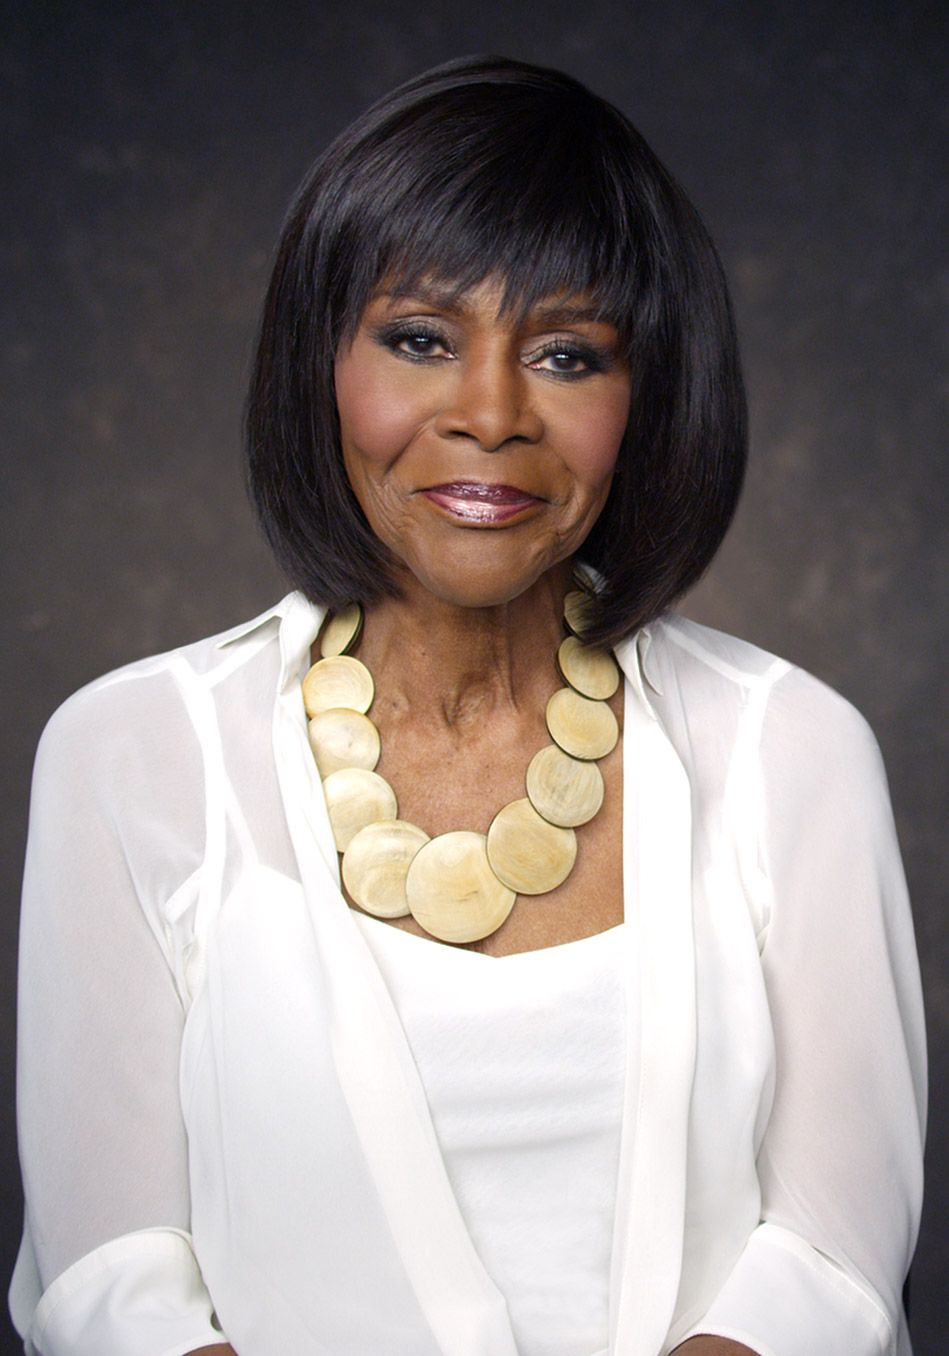 What Makes Cicely Tyson's Skin Tingle?